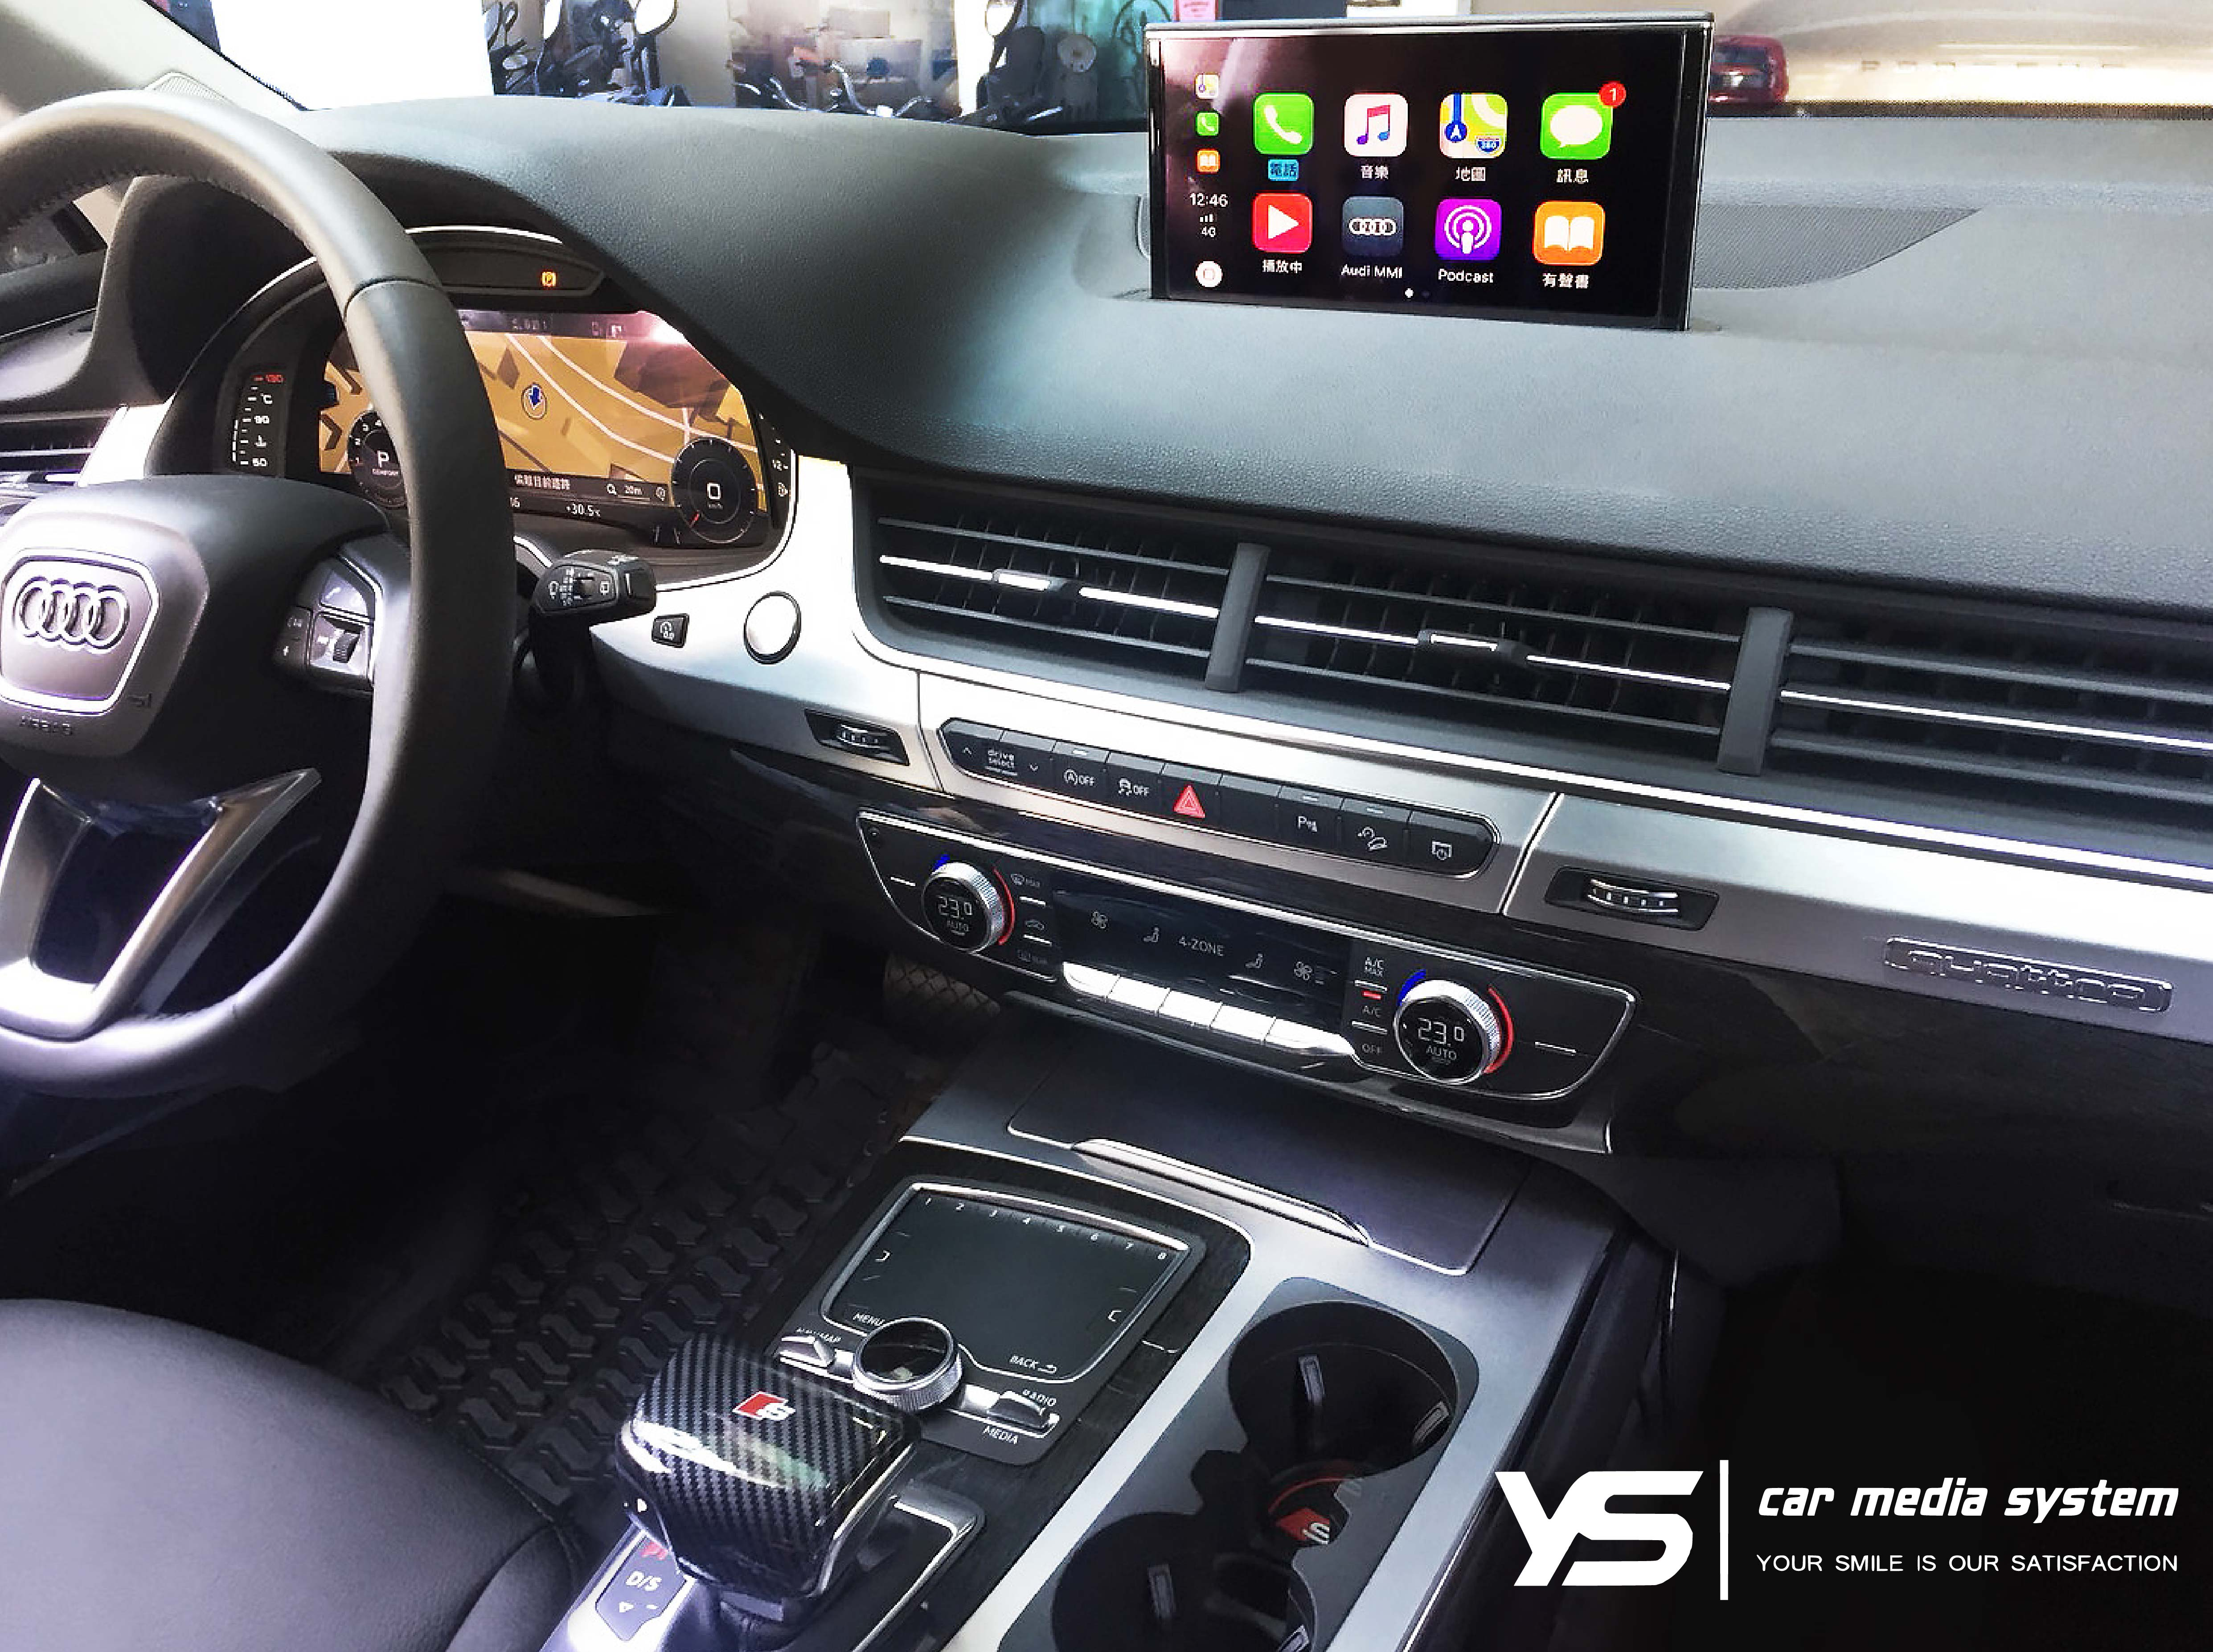 Audi Q7 carplay